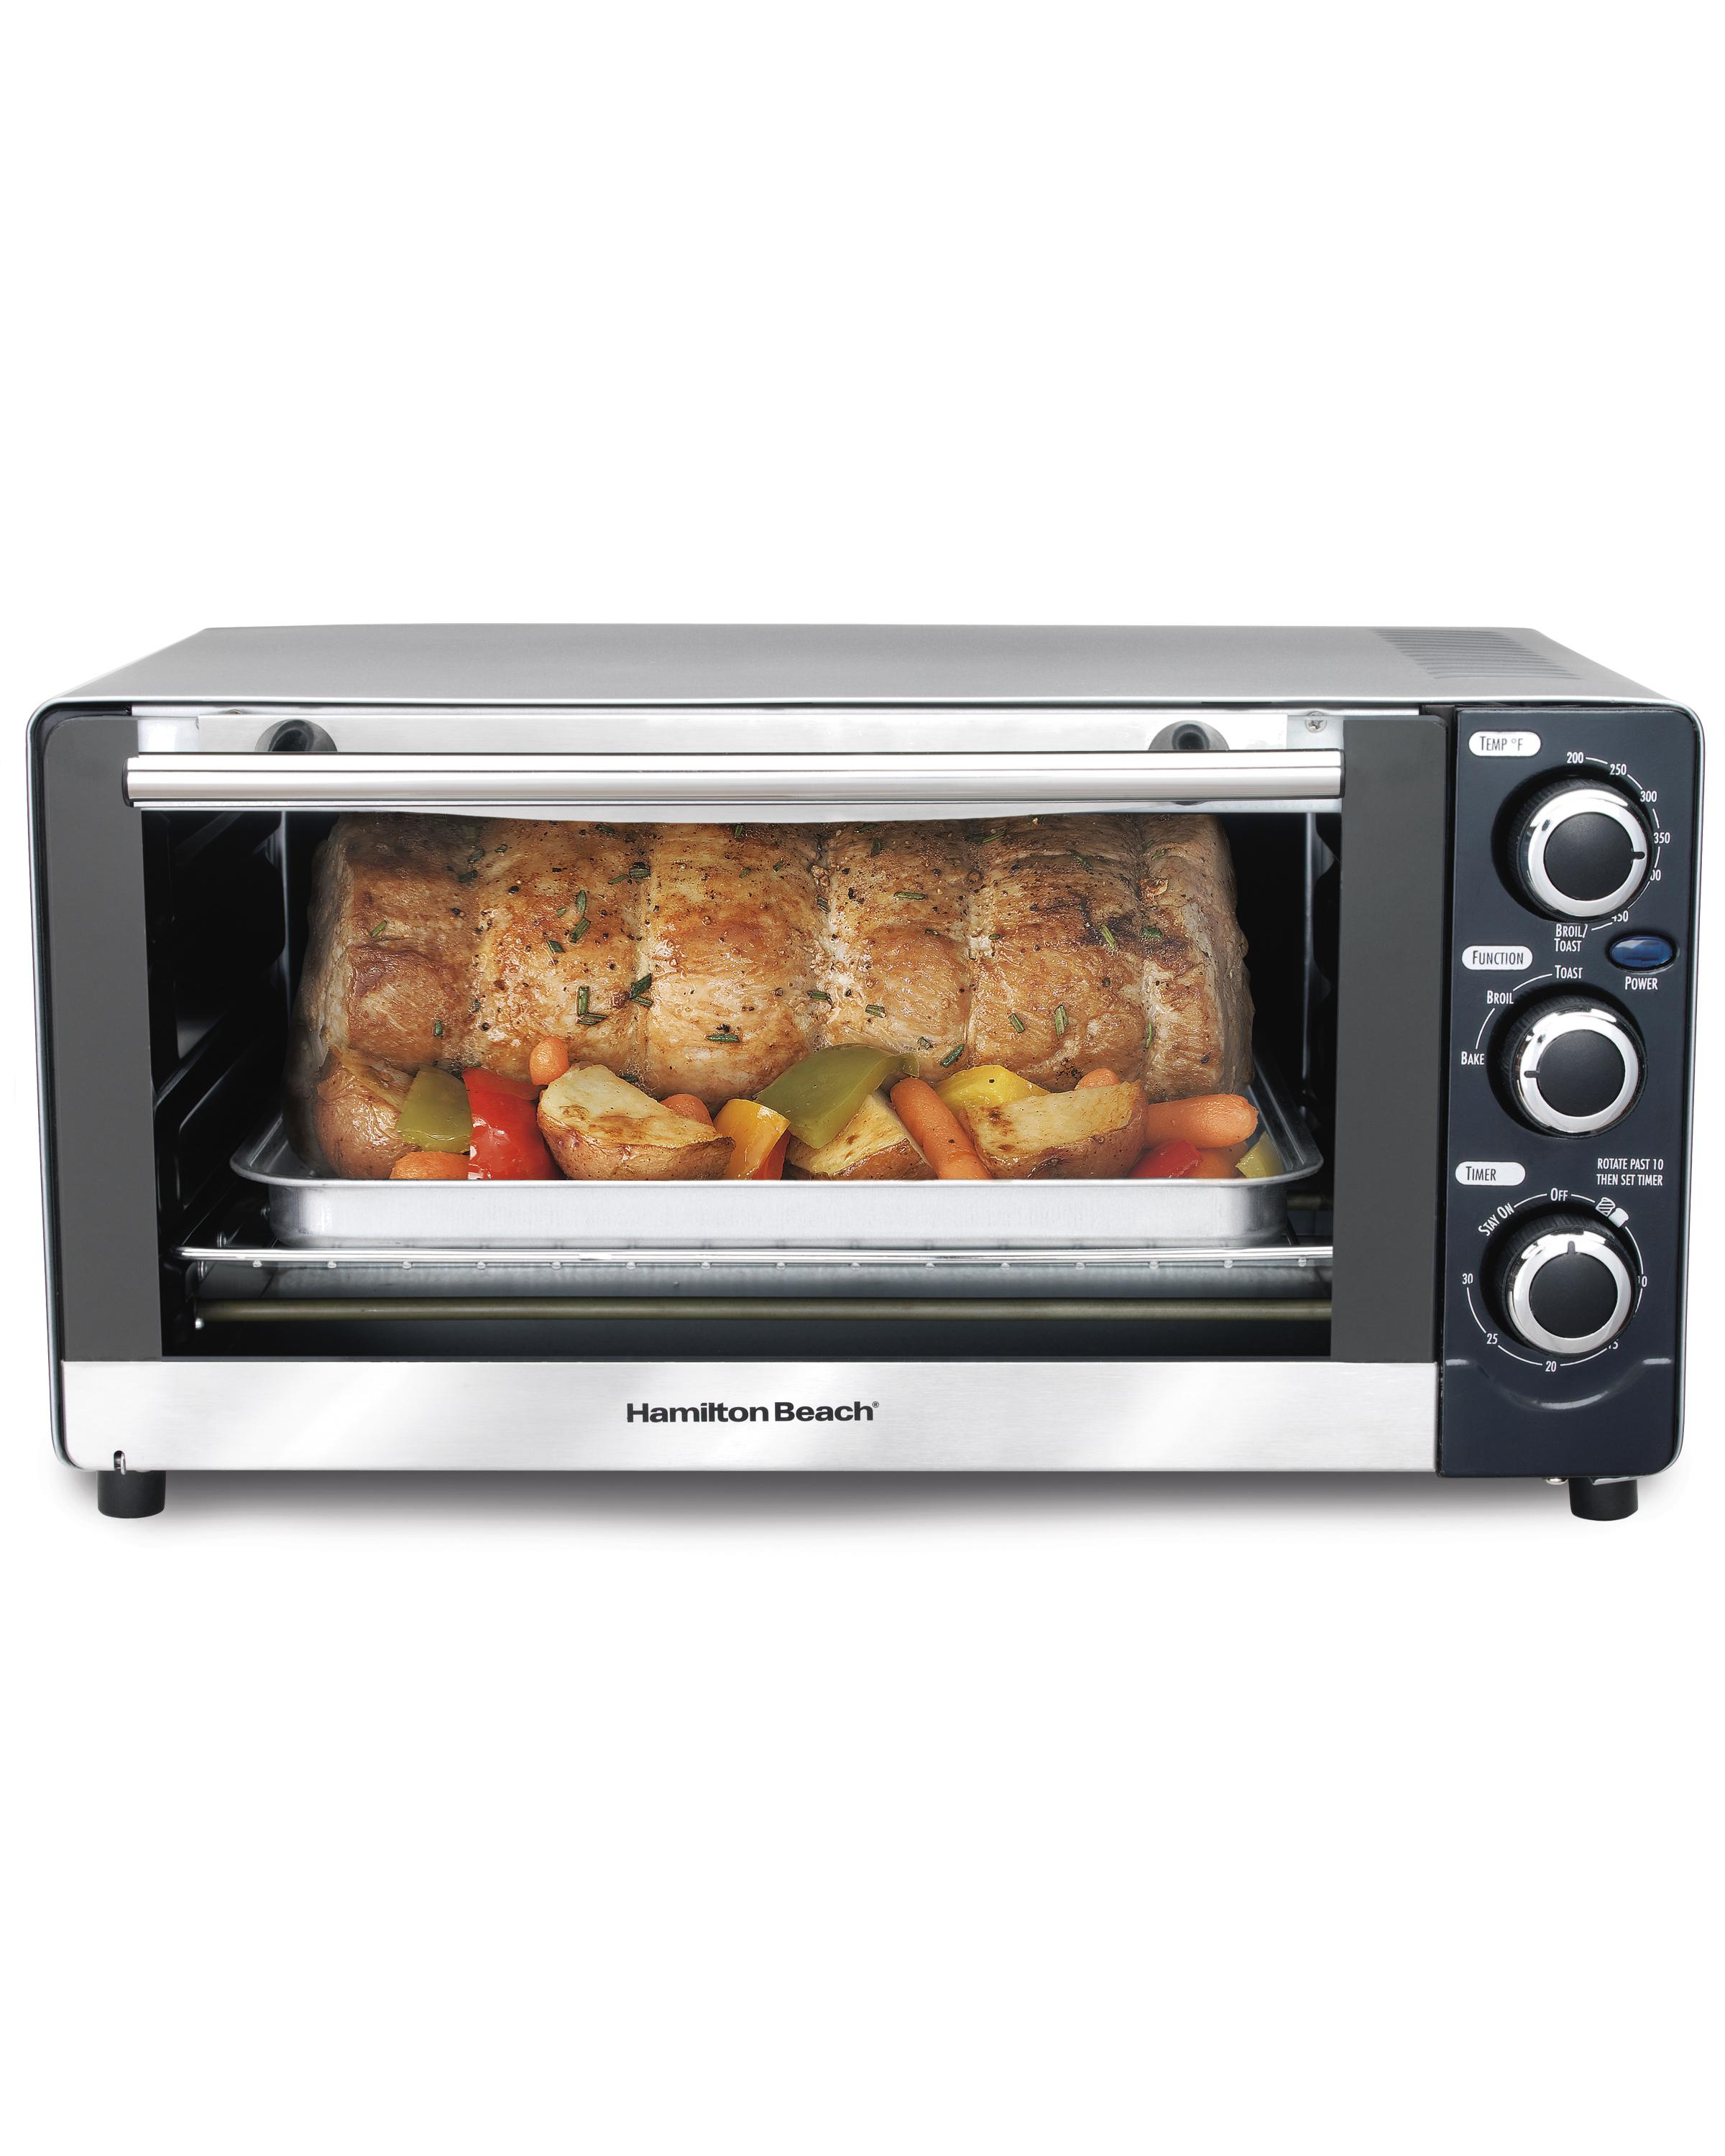 Hamilton Beach 174 6 Slice Toaster Oven Amazon Ca Home